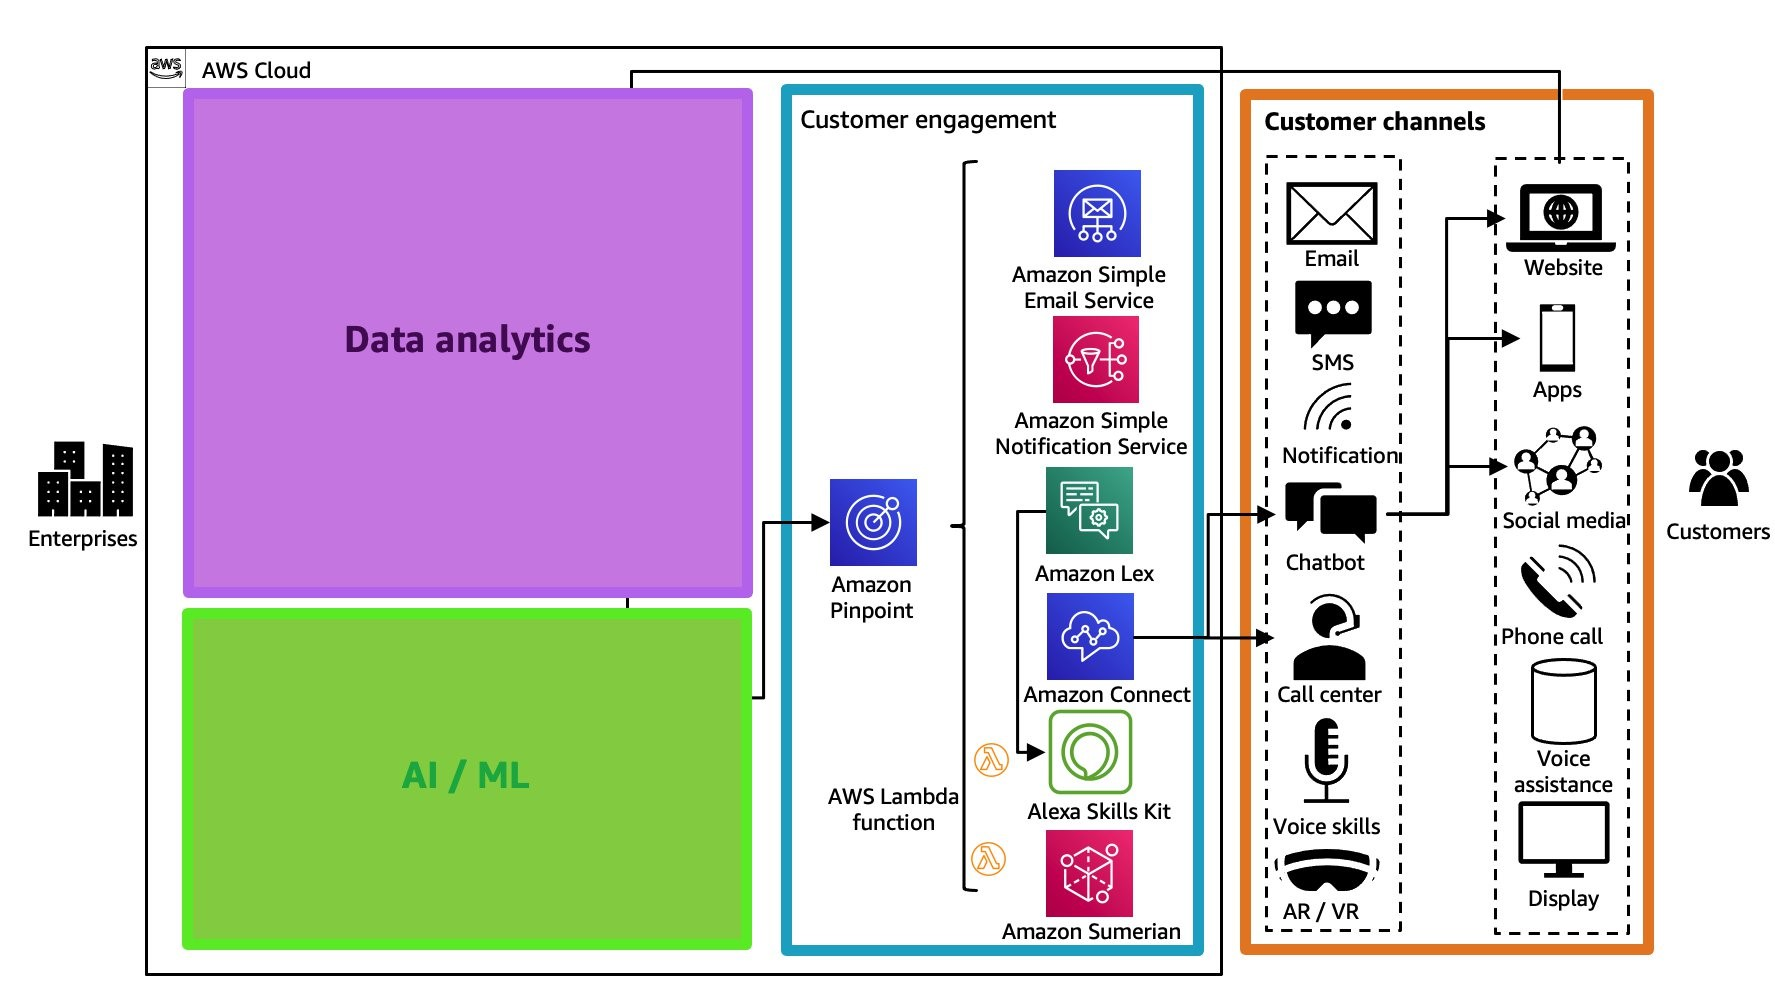 AWS customer engagement services with Amazon Pinpoint